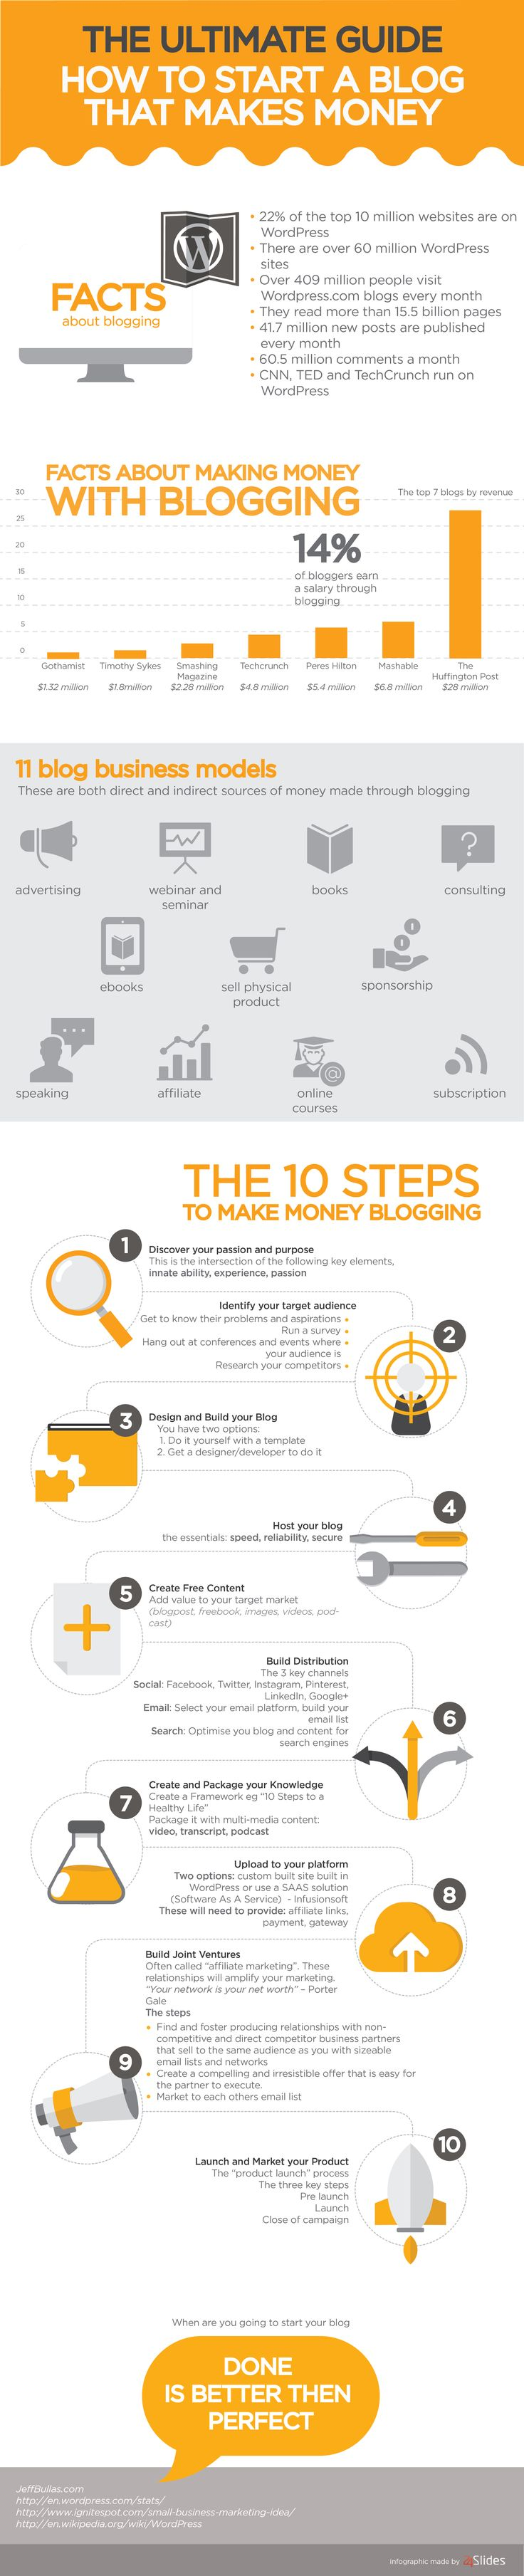 How to start a #blogging business